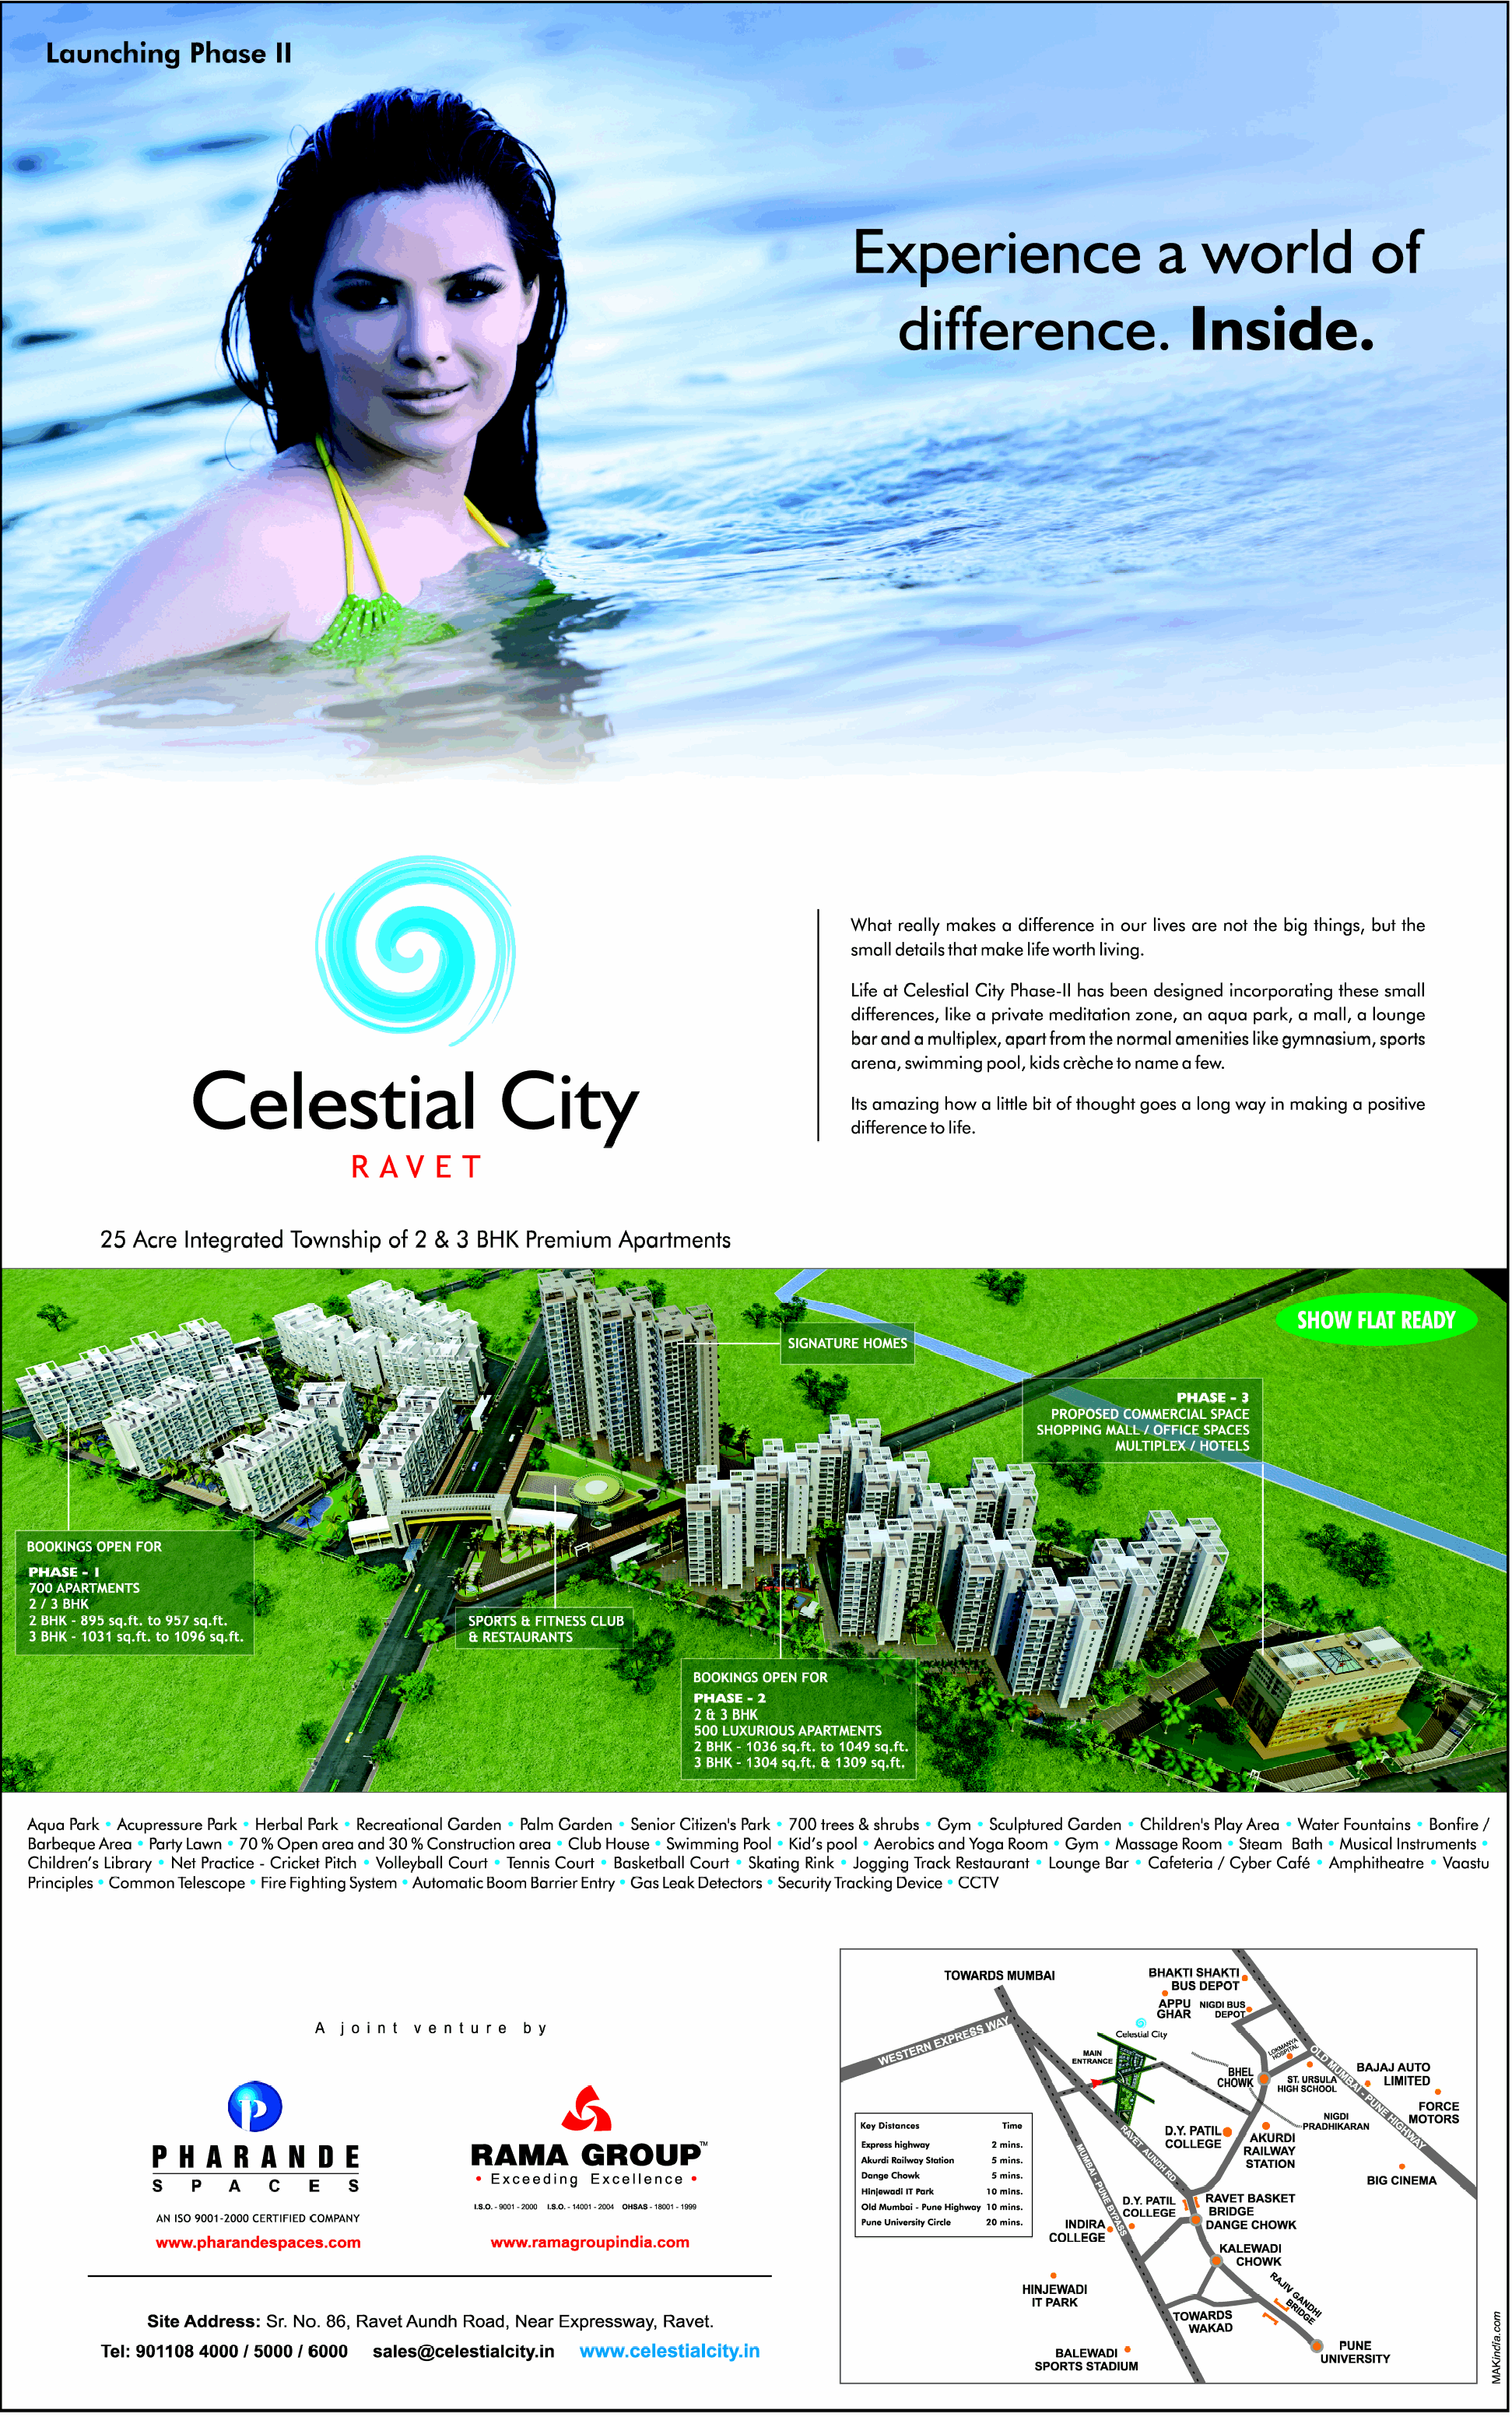 Celestial City Ravet PCMC Pune - Launches Phase 2